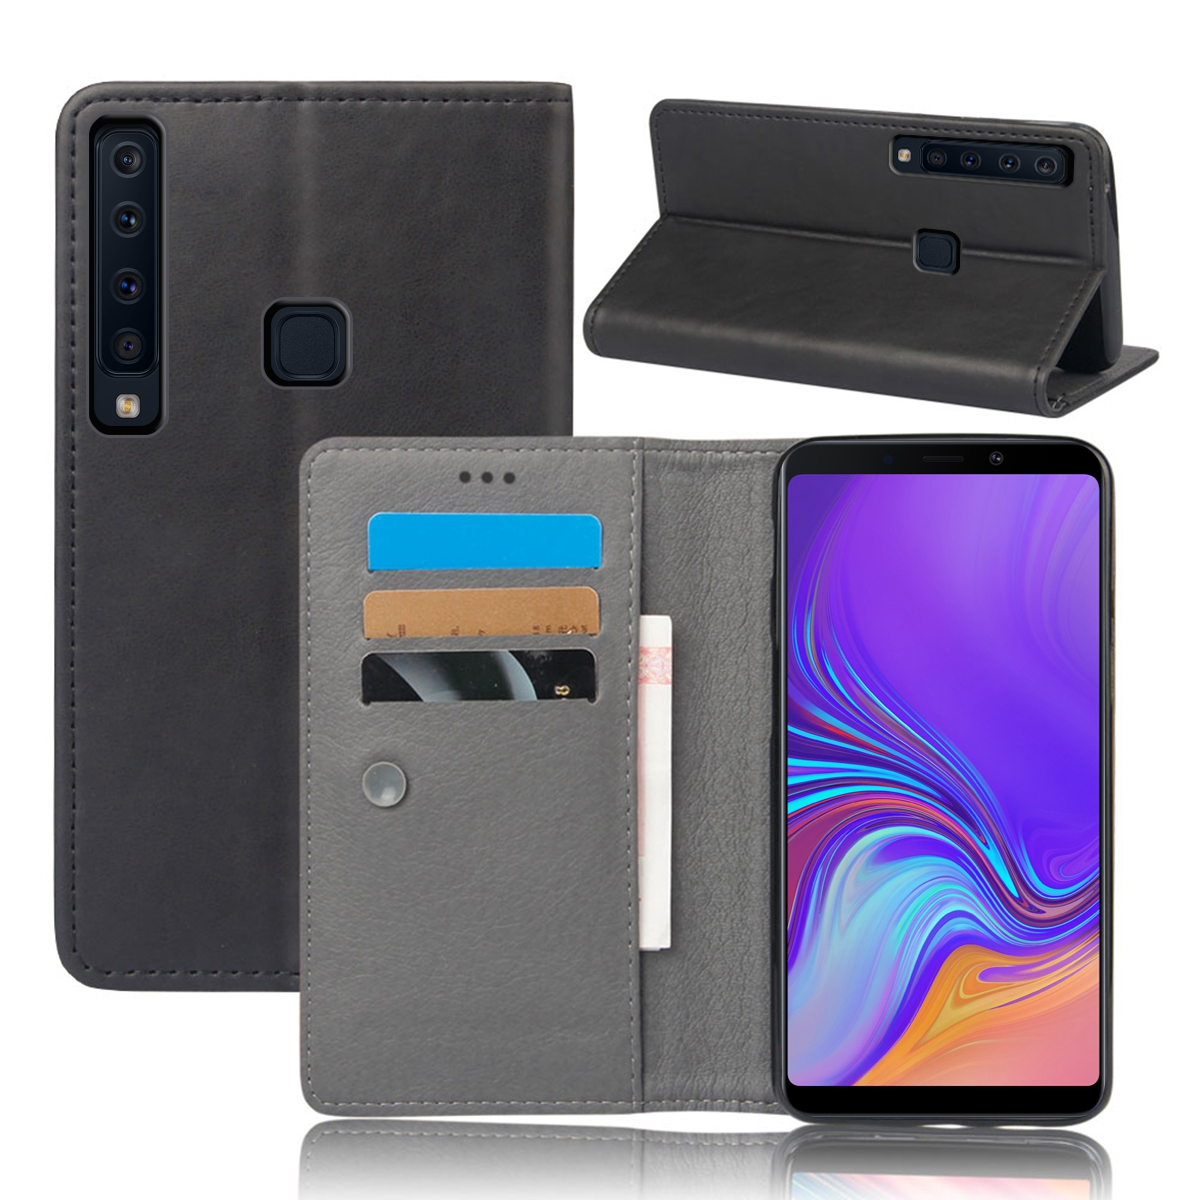 CASEWIN For Samsung Galaxy A9 2018 A9 Star Pro A9s Case PU Leather Slim Fit Magnetic Flip Stand Protective Cover With Card Slots